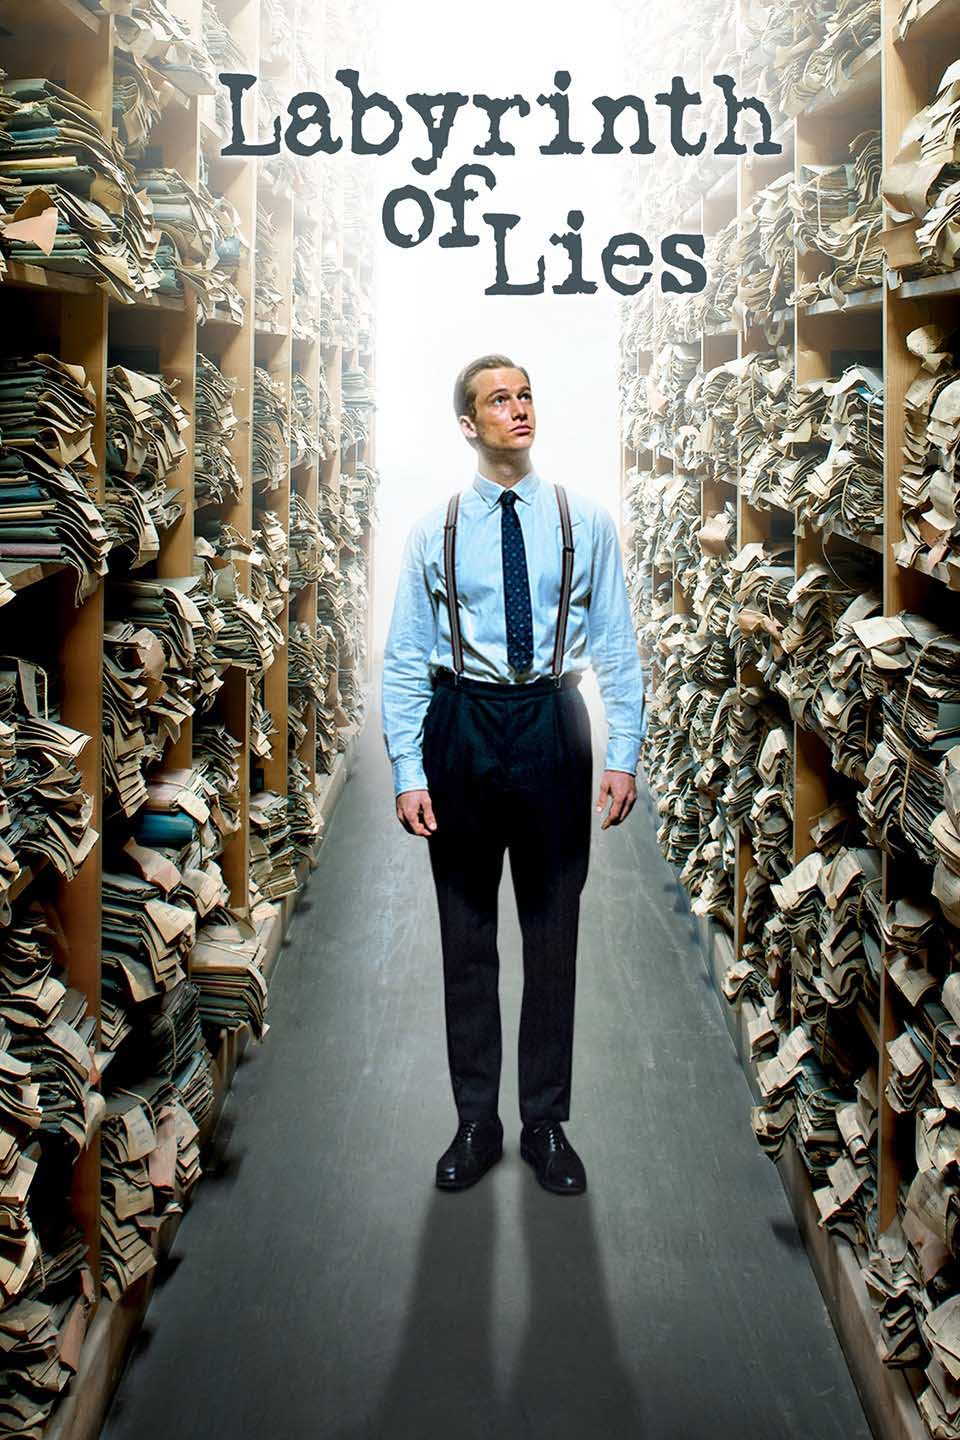 A poster for the movie, Labyrinth of Lies, an upcoming IFS movie.